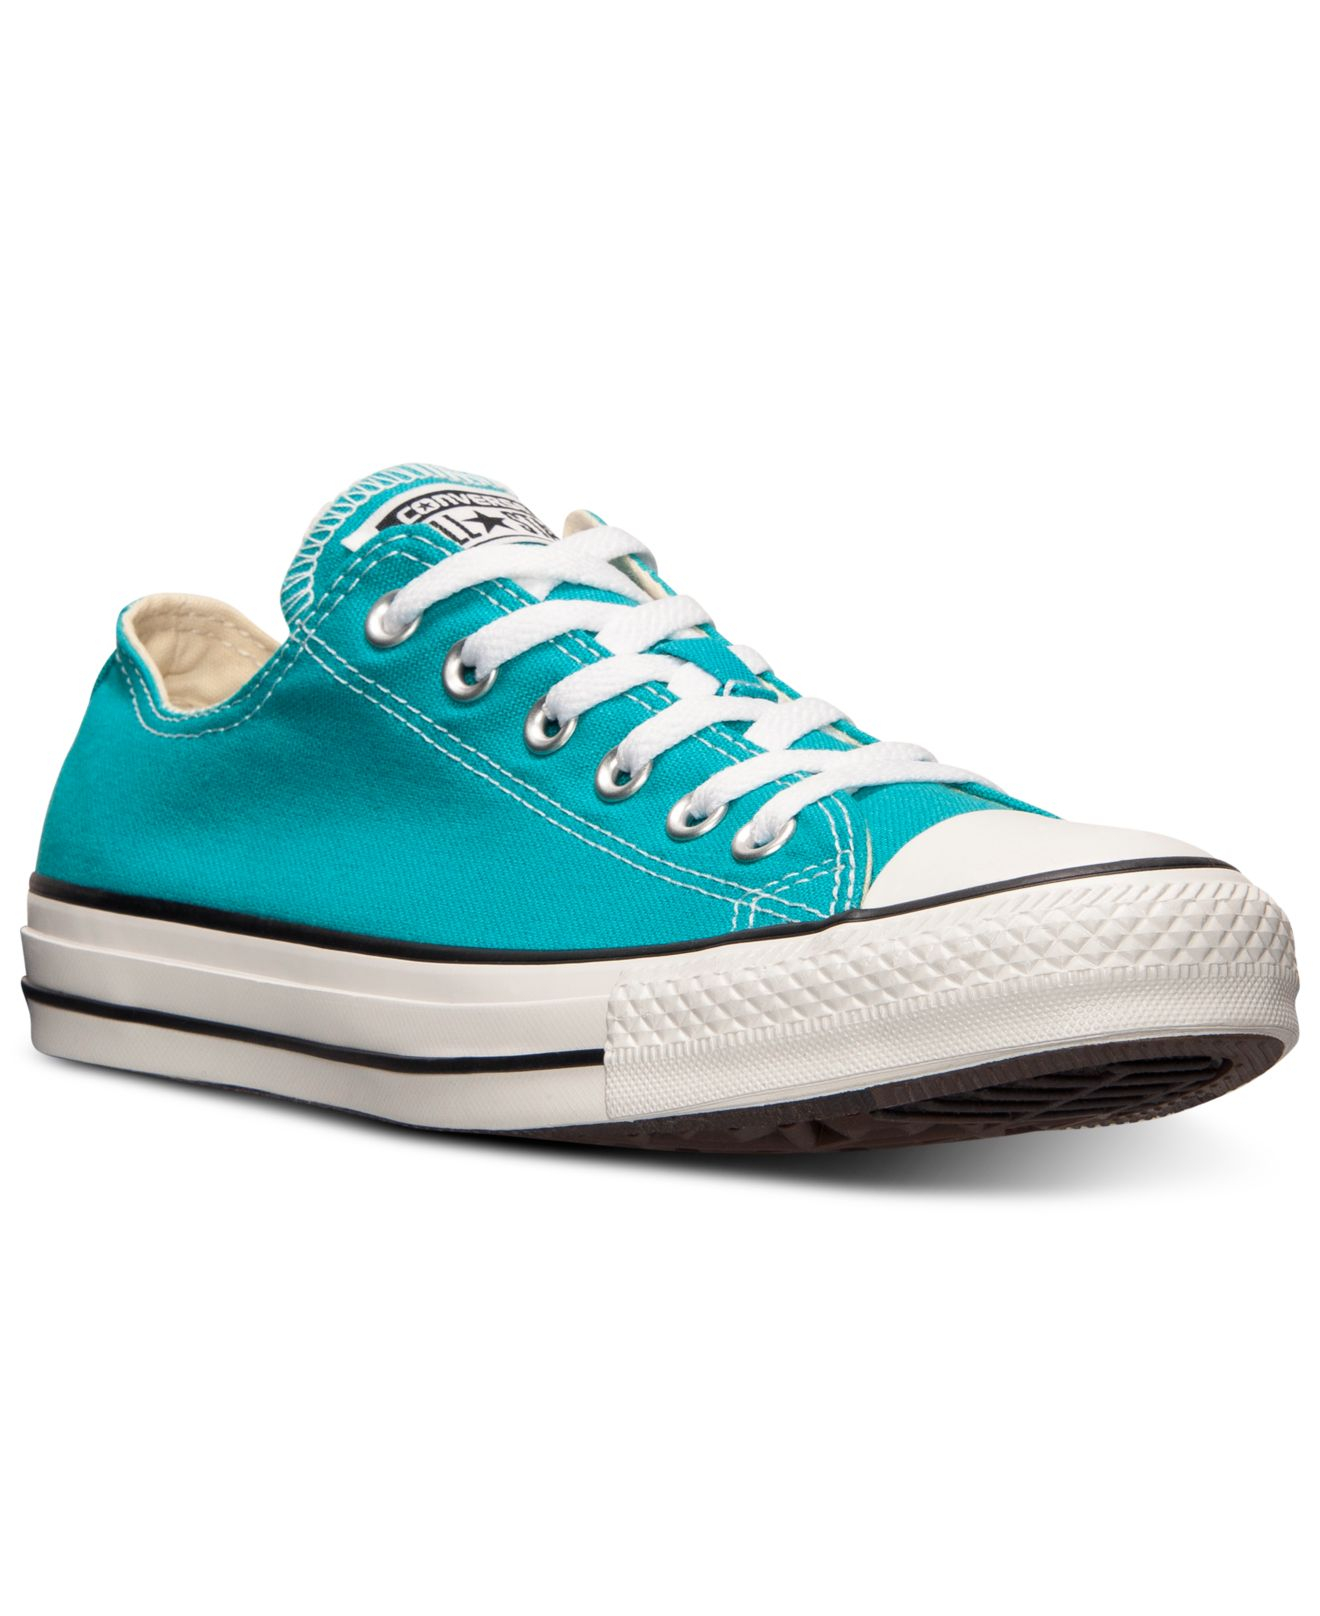 50f228920119ca Lyst - Converse Women S Chuck Taylor Ox Casual Sneakers From Finish ...